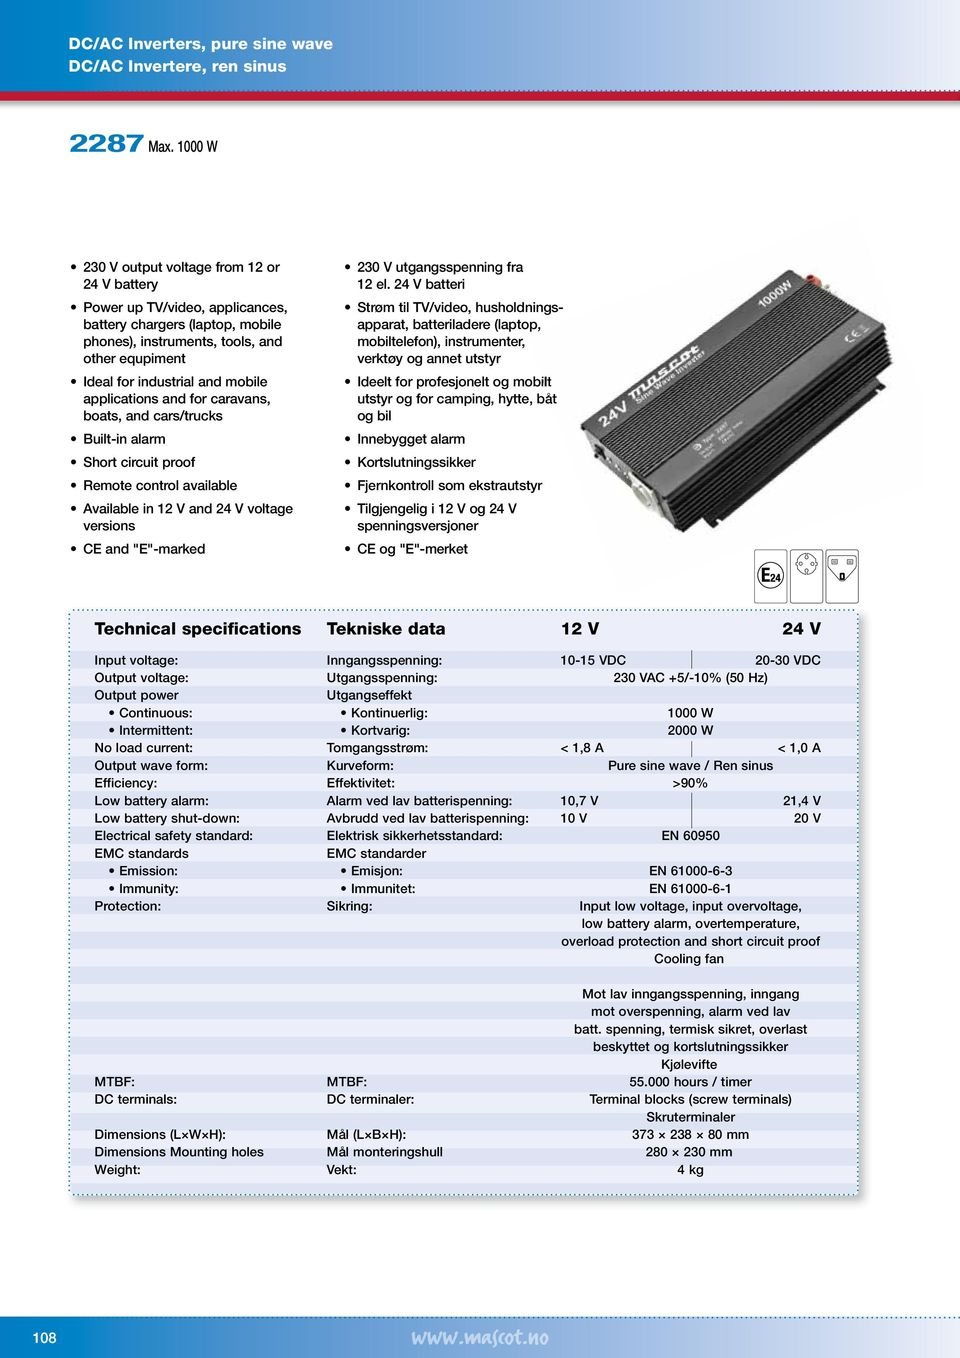 applications and for caravans, boats, and cars/trucks Remote control available voltage versions 230 V utgangsspenning fra 12 el.